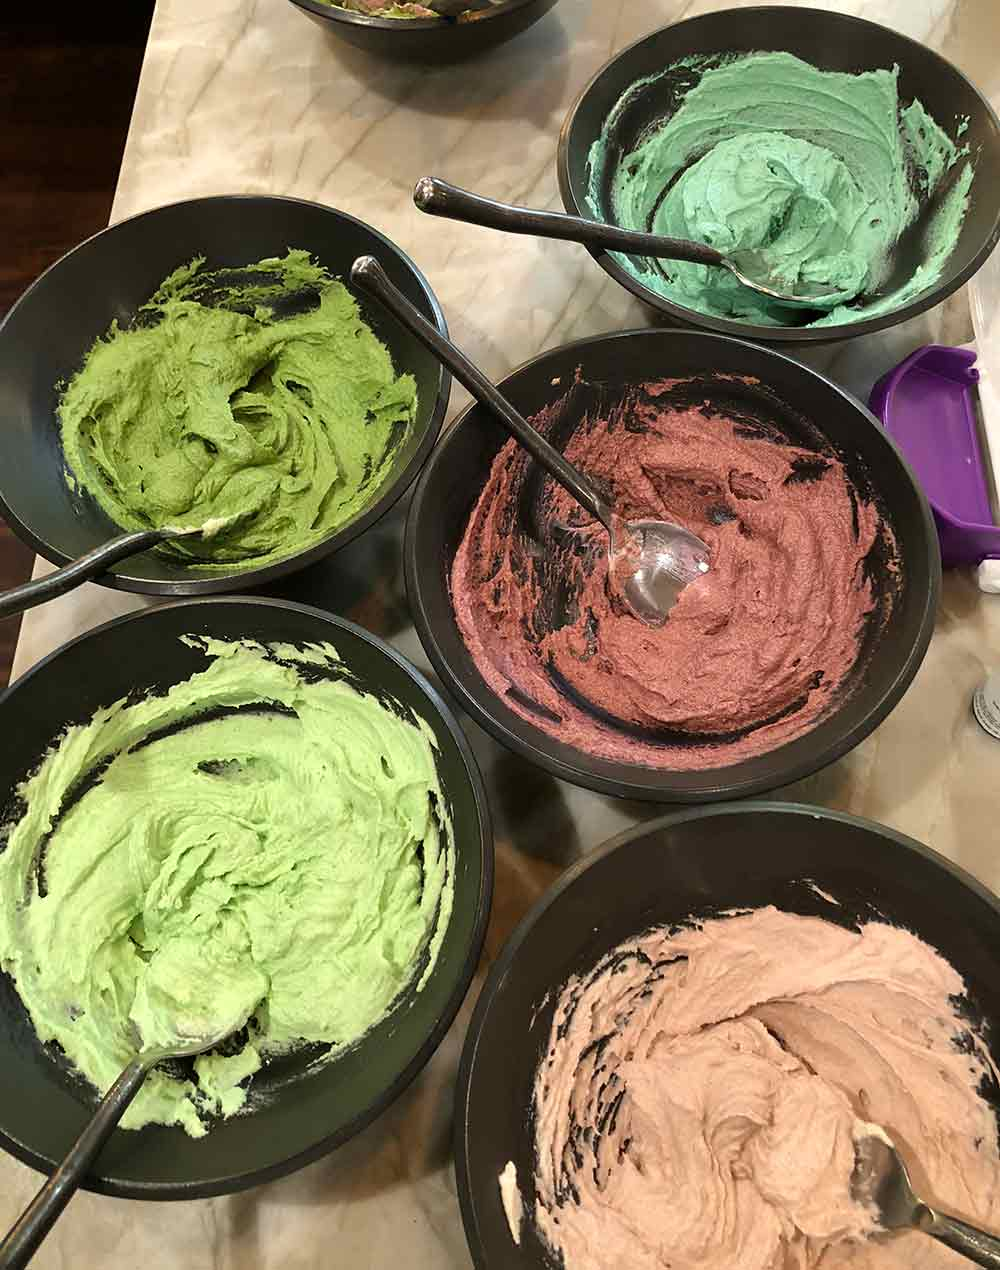 vegan buttercream frosting for making succulent plants